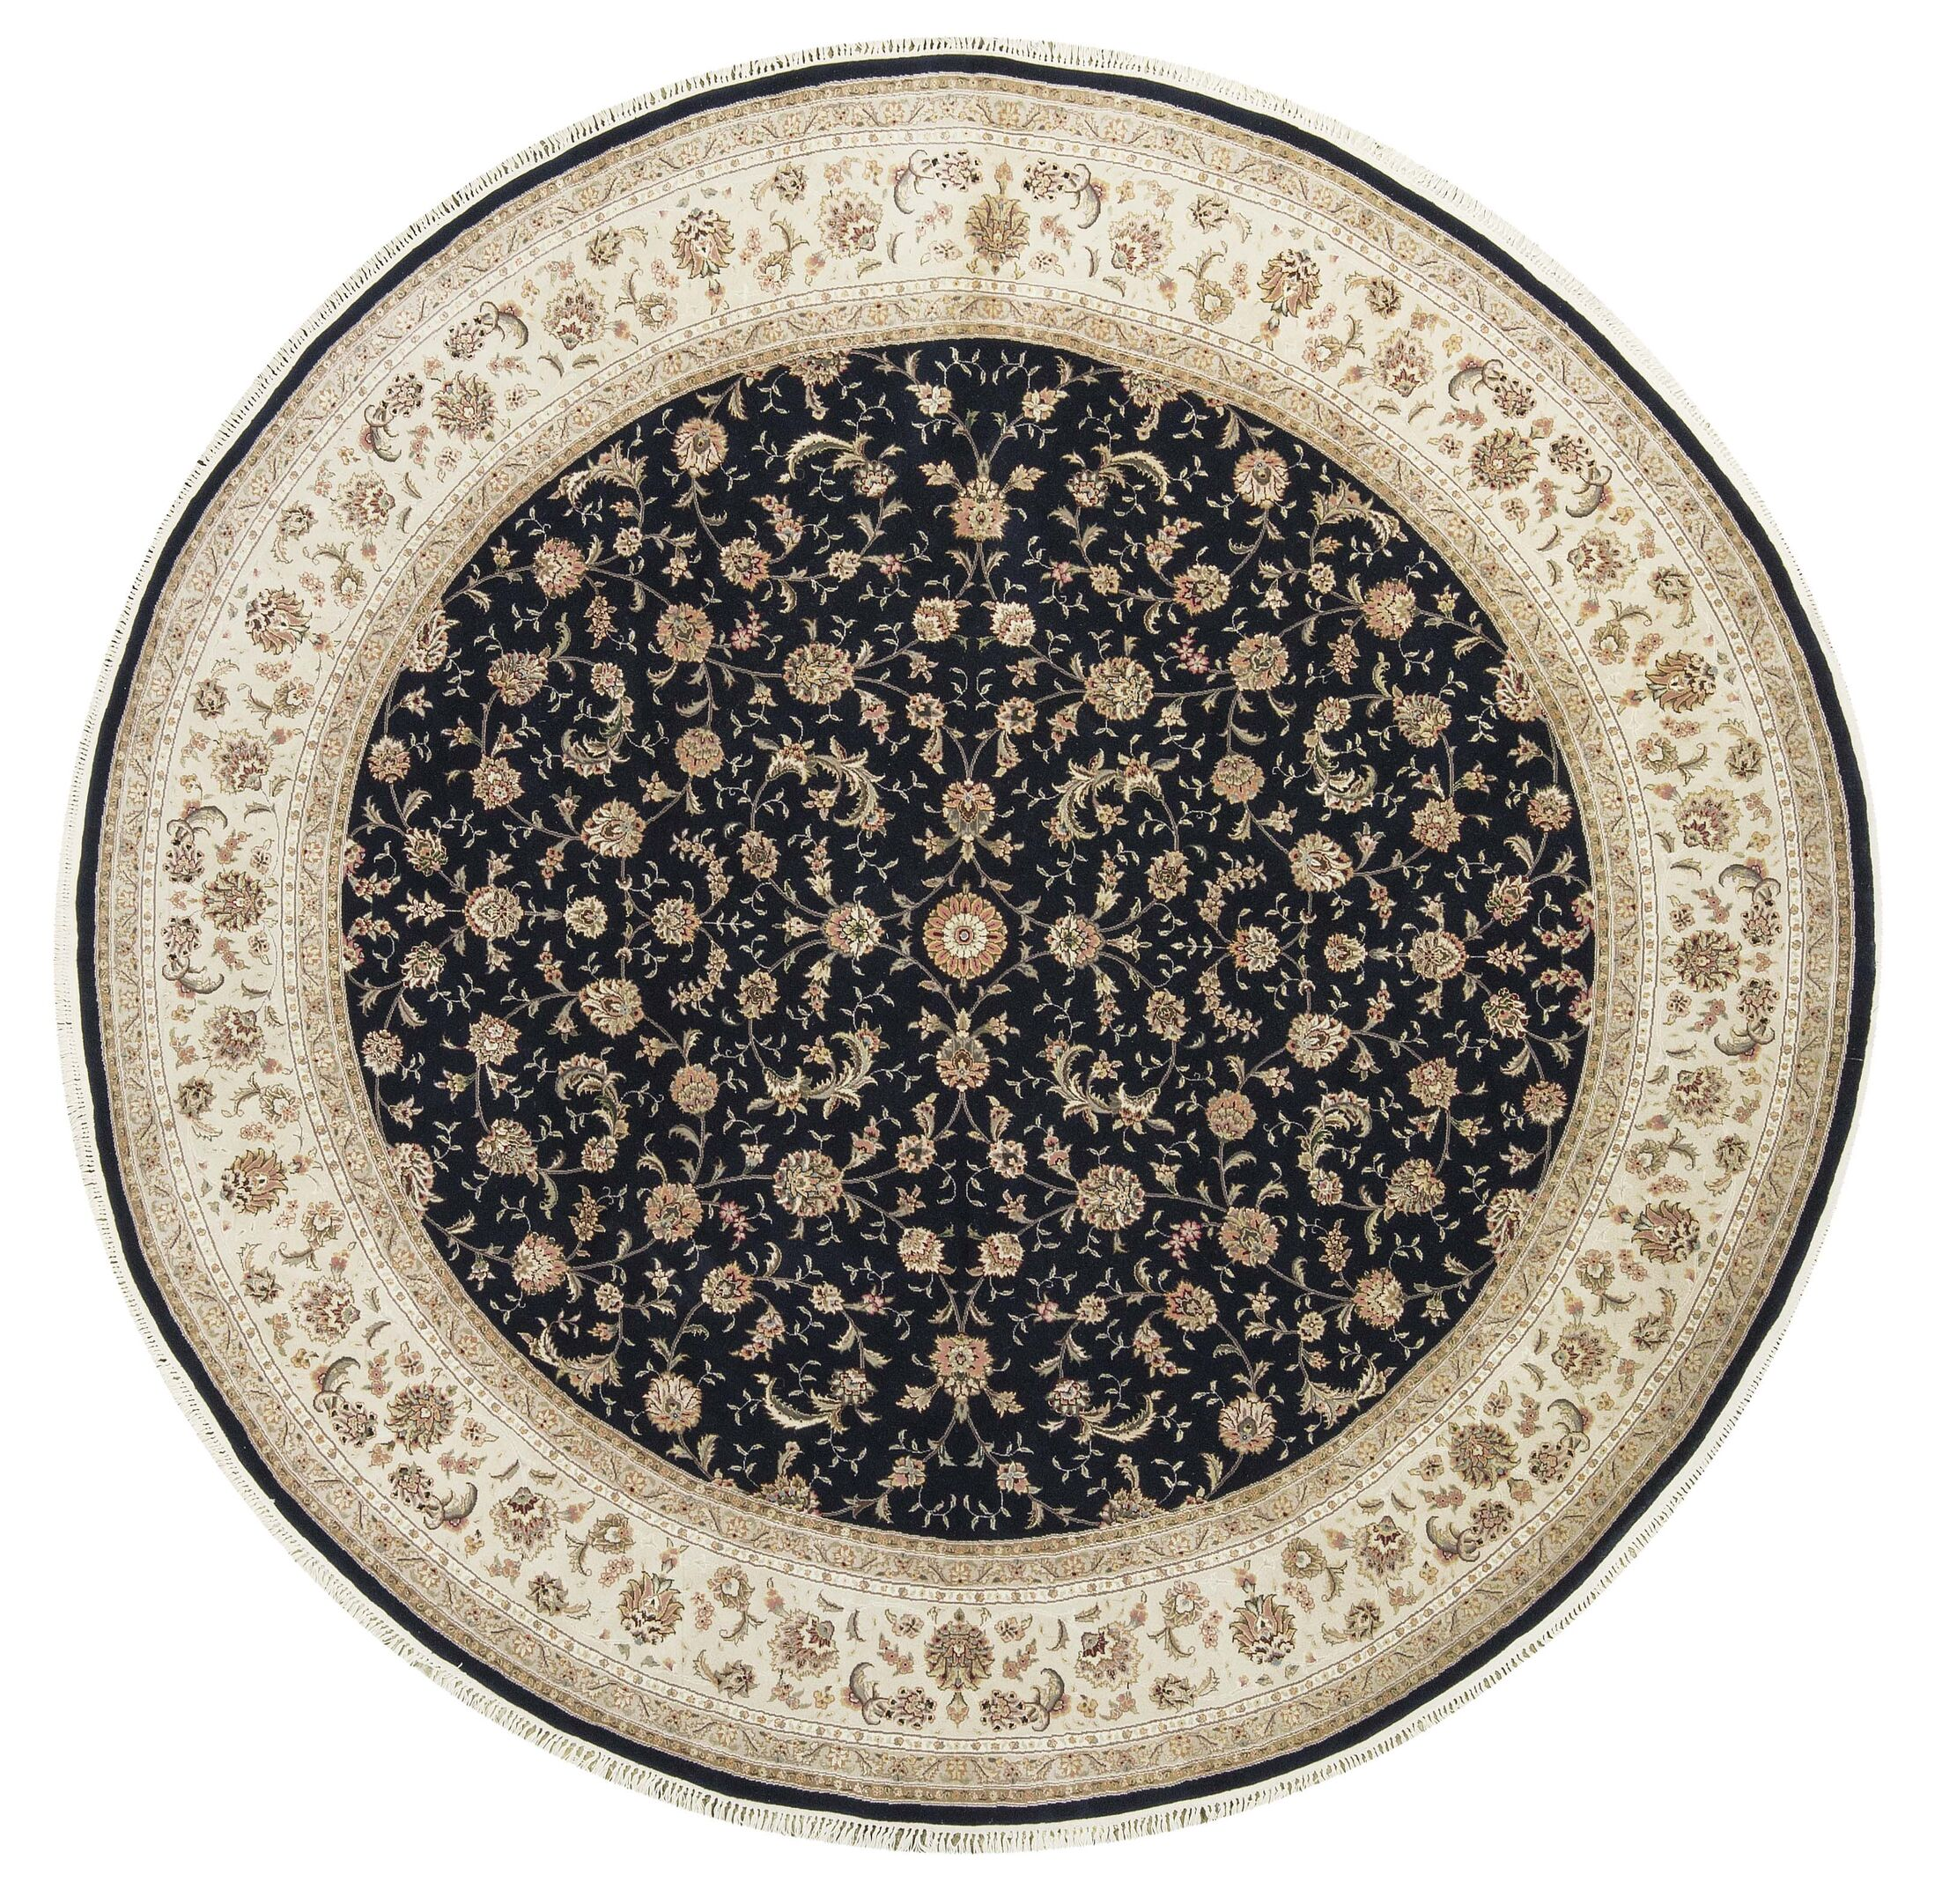 One-of-a-Kind Elegance Select Handwoven 10' x 10' Wool/Silk Brown/Black Area Rug